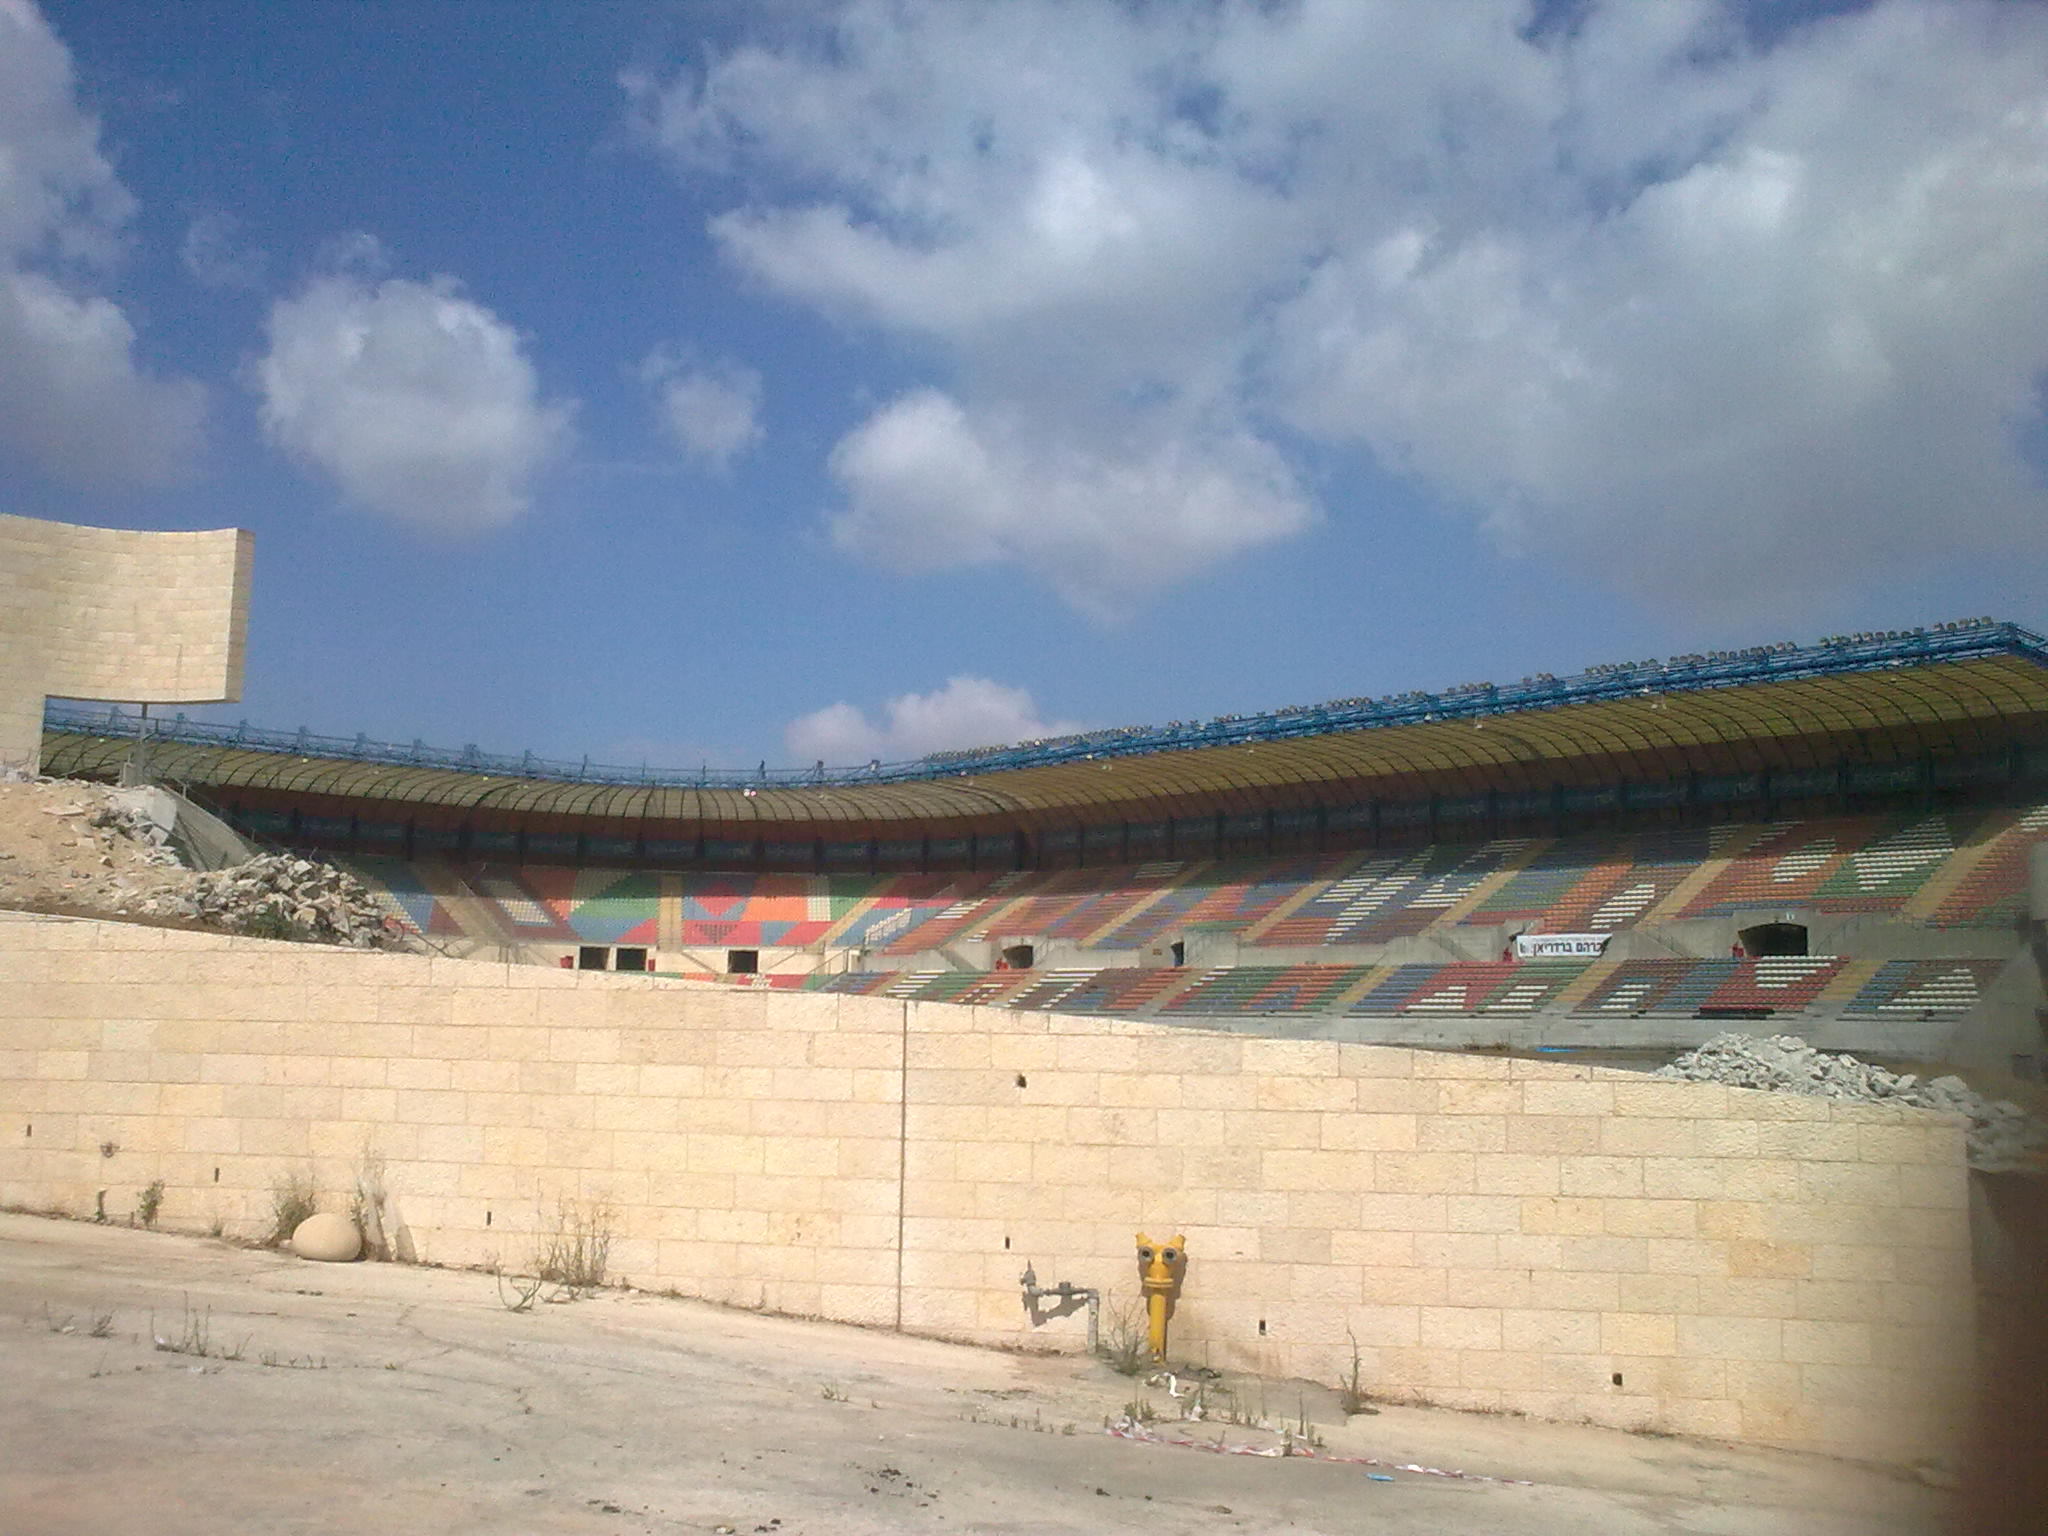 Teddy Stadium Renovation19.jpg English: Teddy Stadium, Jerusalem עברית: אצטדיון טדי, ירושלים Date 31 August 2011 Source Own work Author Little